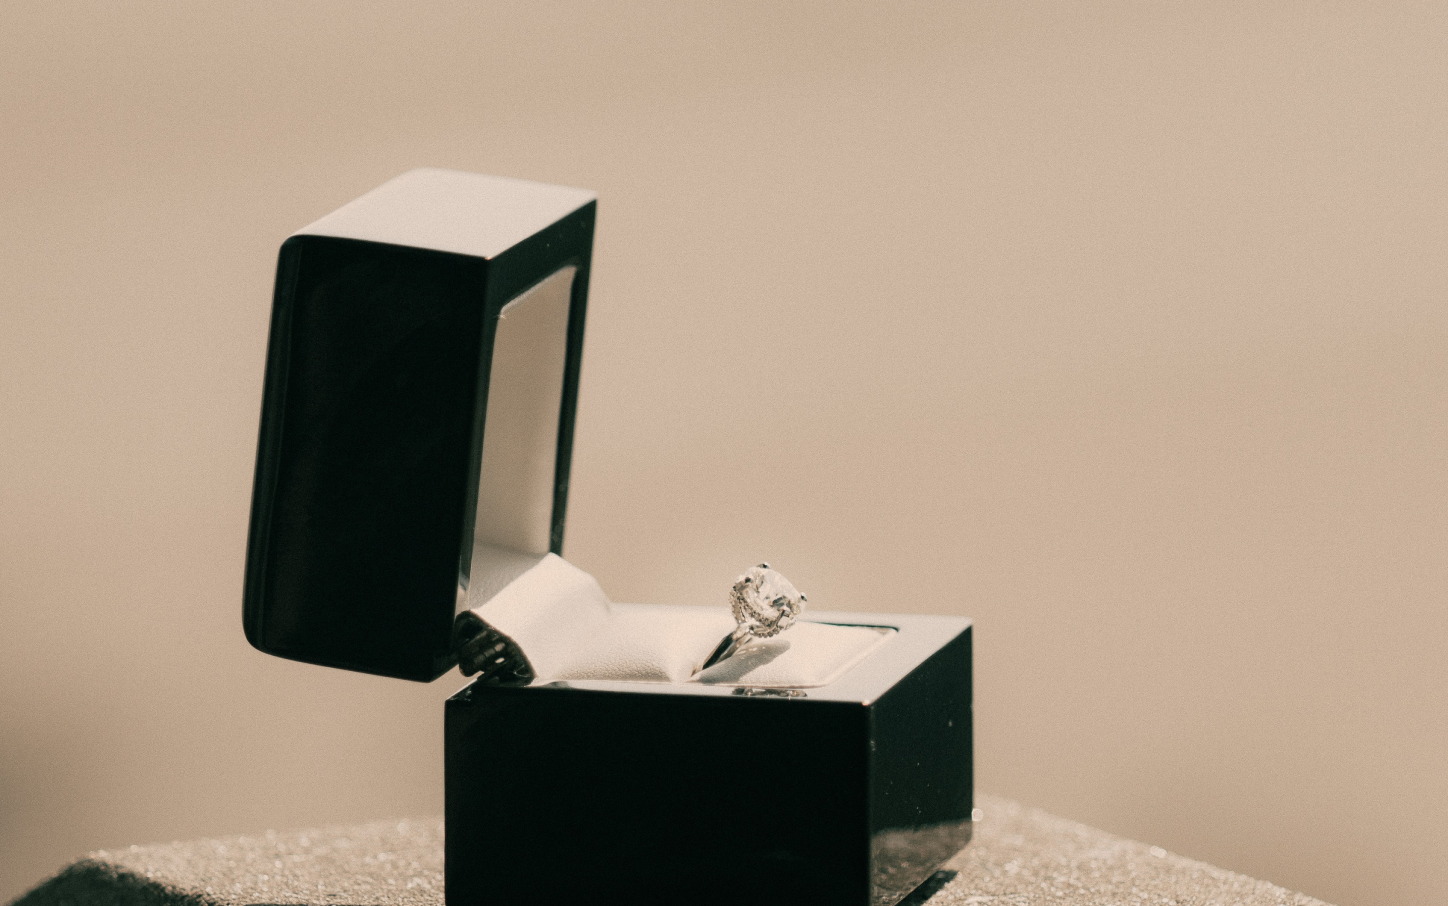 Rules of Engagement – who gets to keep the engagement ring?